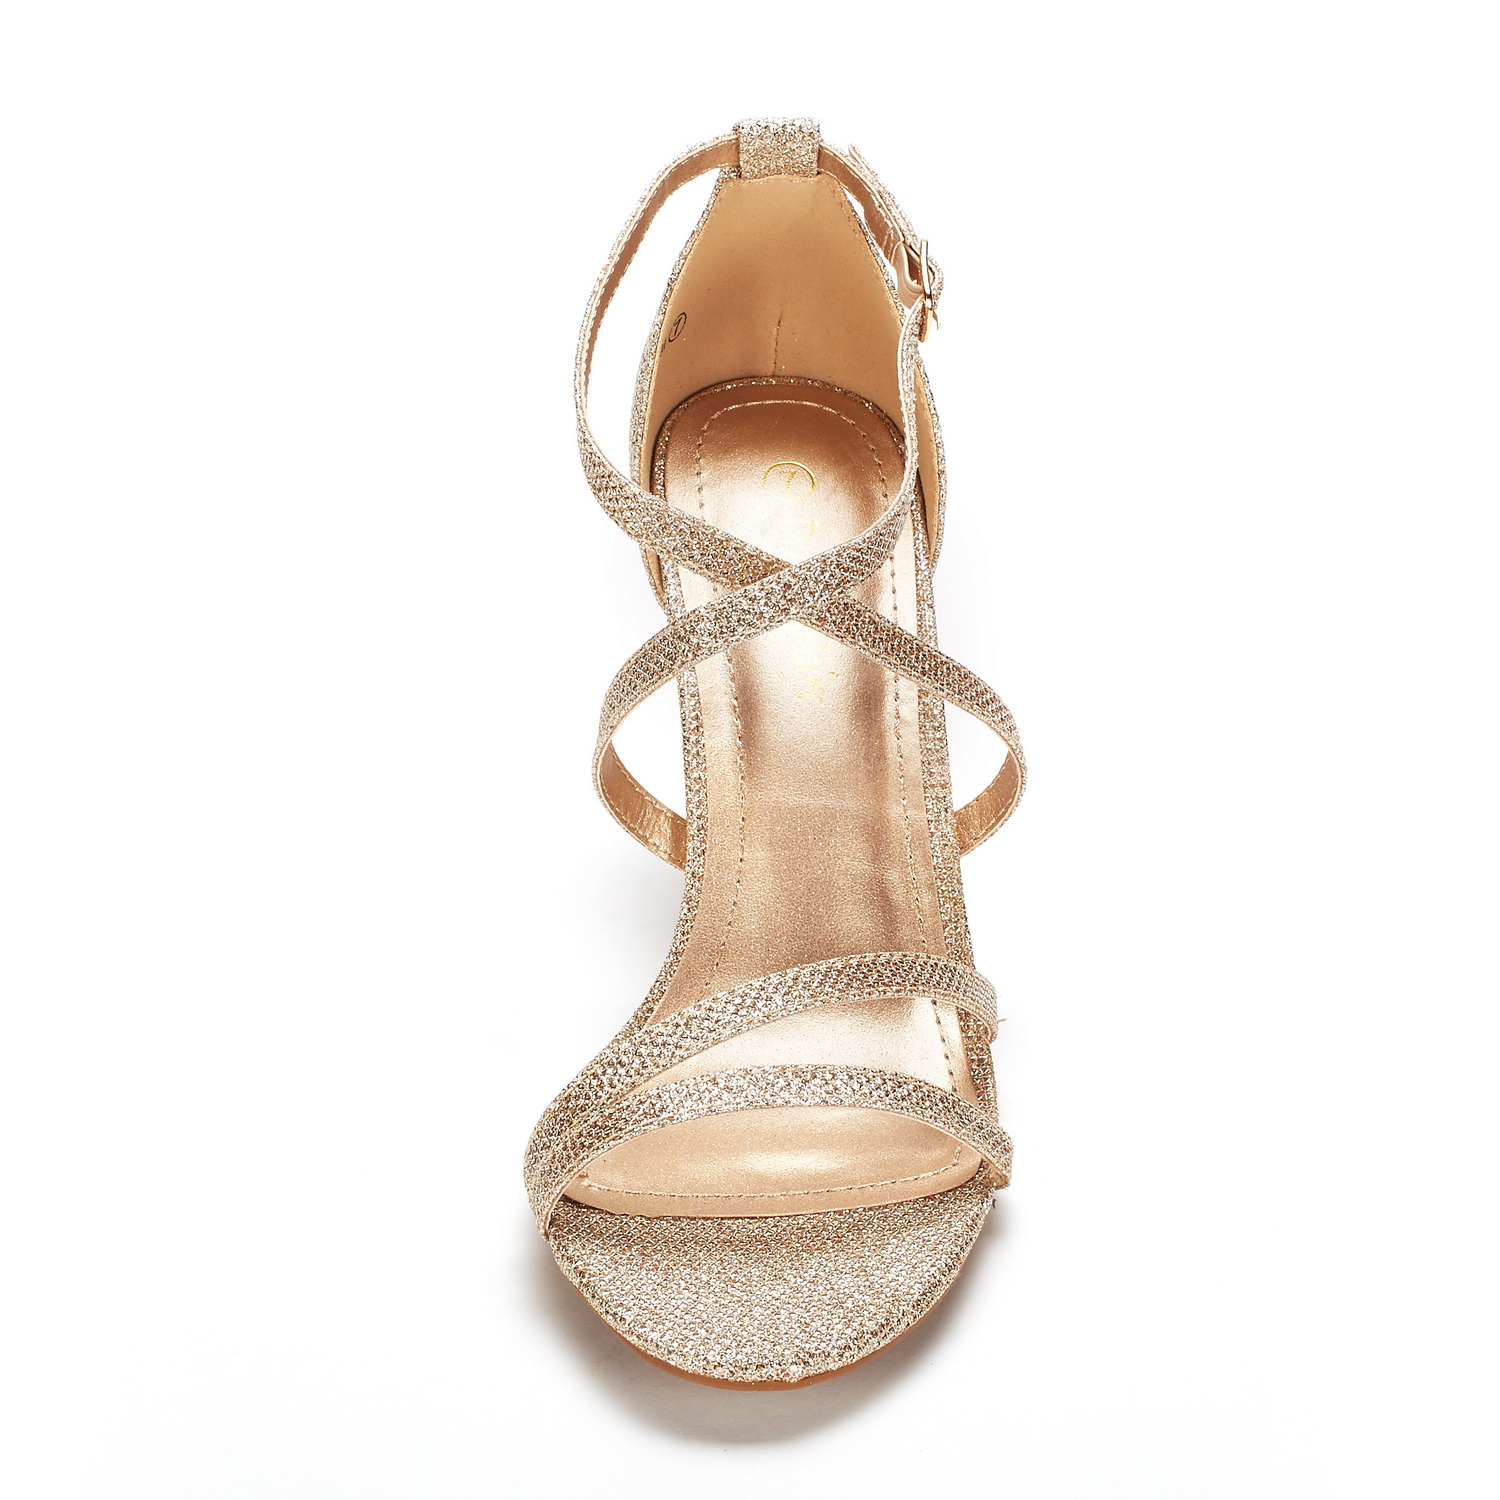 DREAM-PAIRS-Women-039-s-Ankle-Strap-High-Heel-Sandals-Dress-Shoes-Wedding-Party thumbnail 31